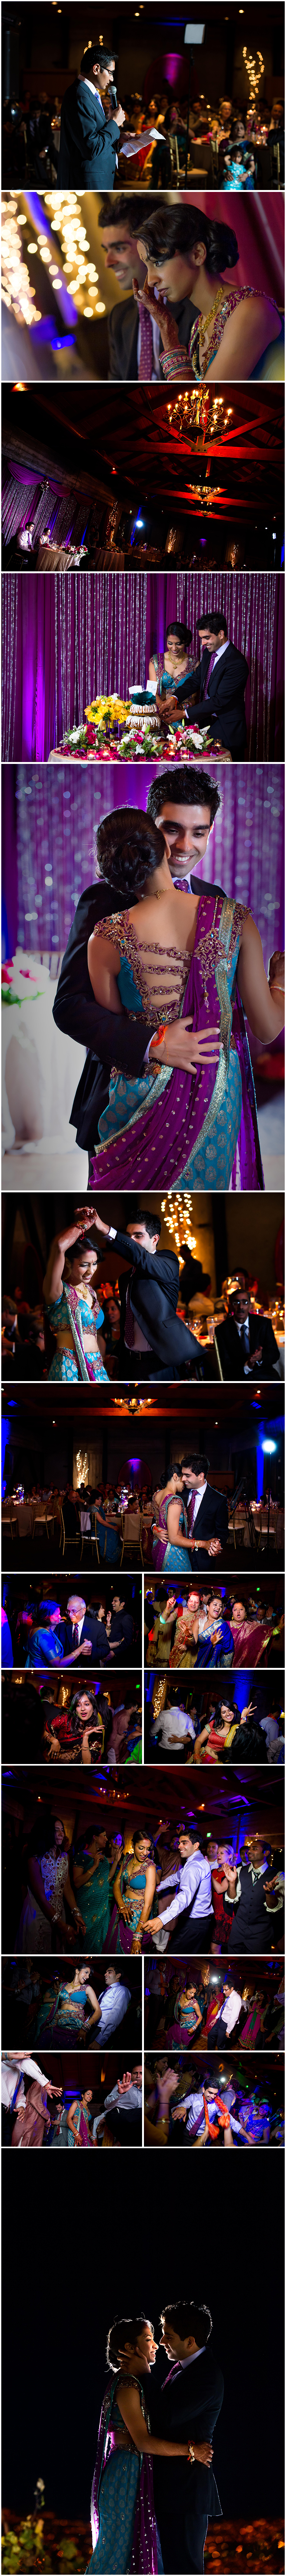 India Gujrati wedding Mountain Winery Saratoga